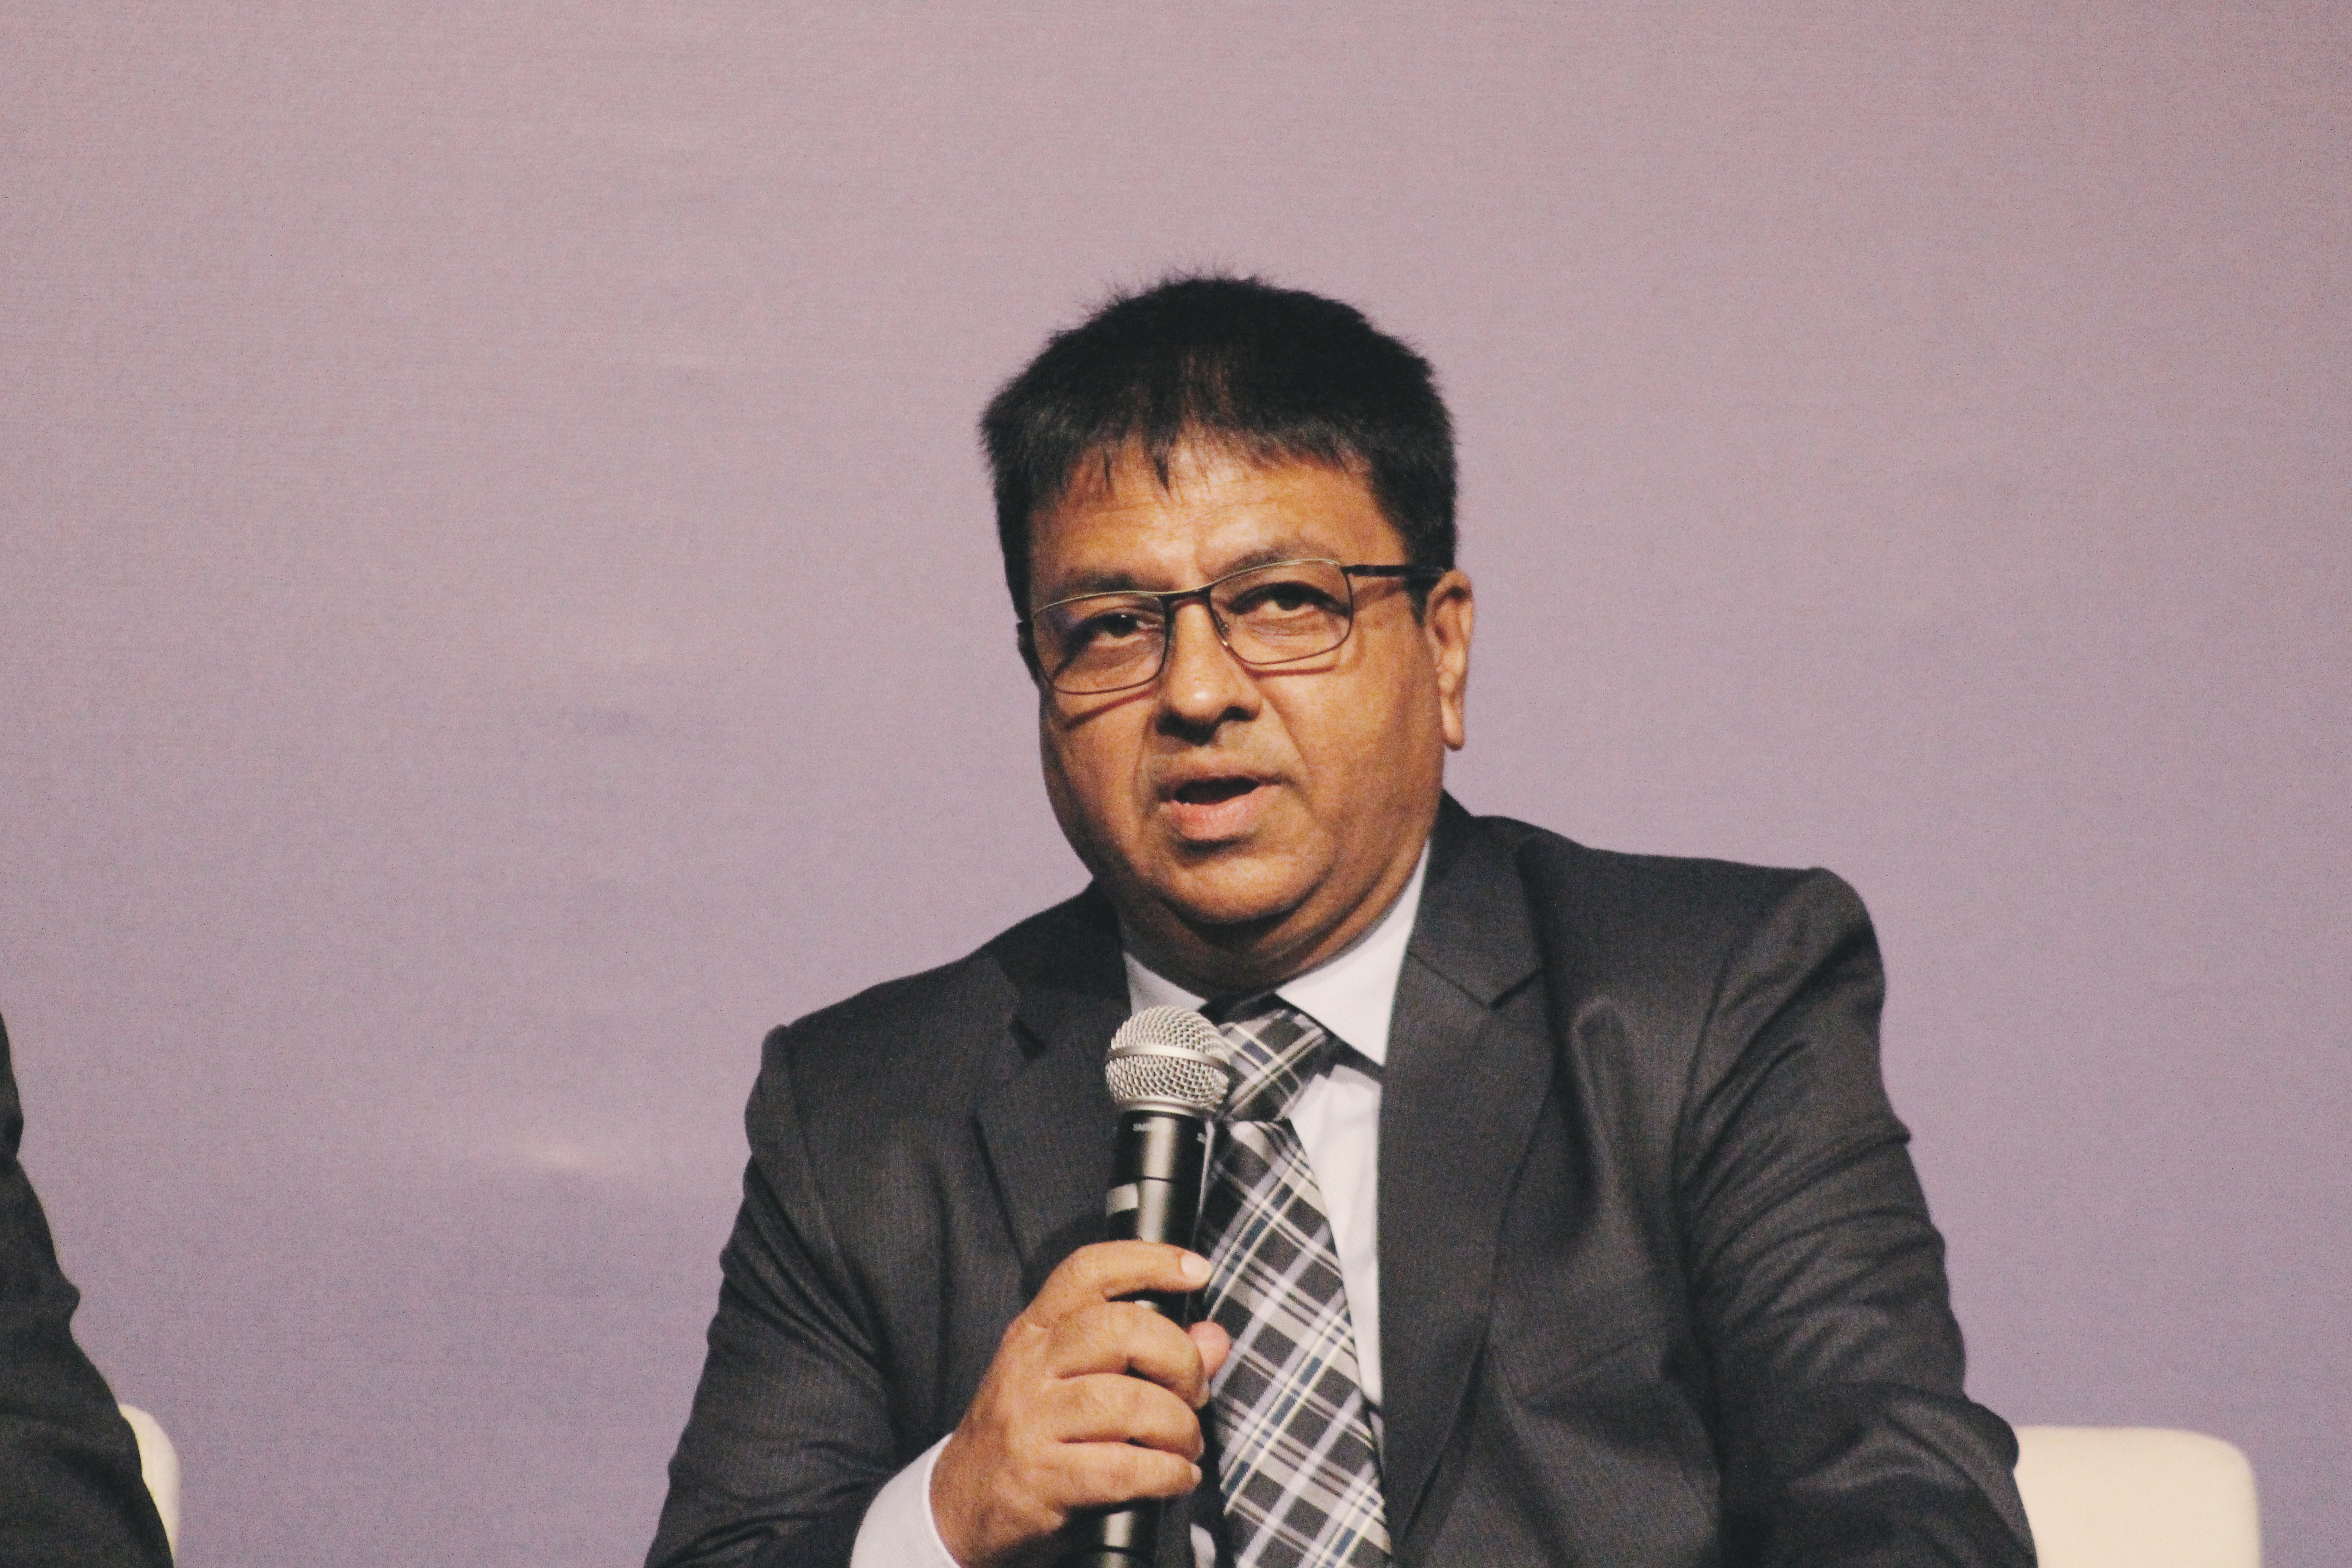 Atul Temurnikar, Chairman of GIIS. Photo: Connected to India